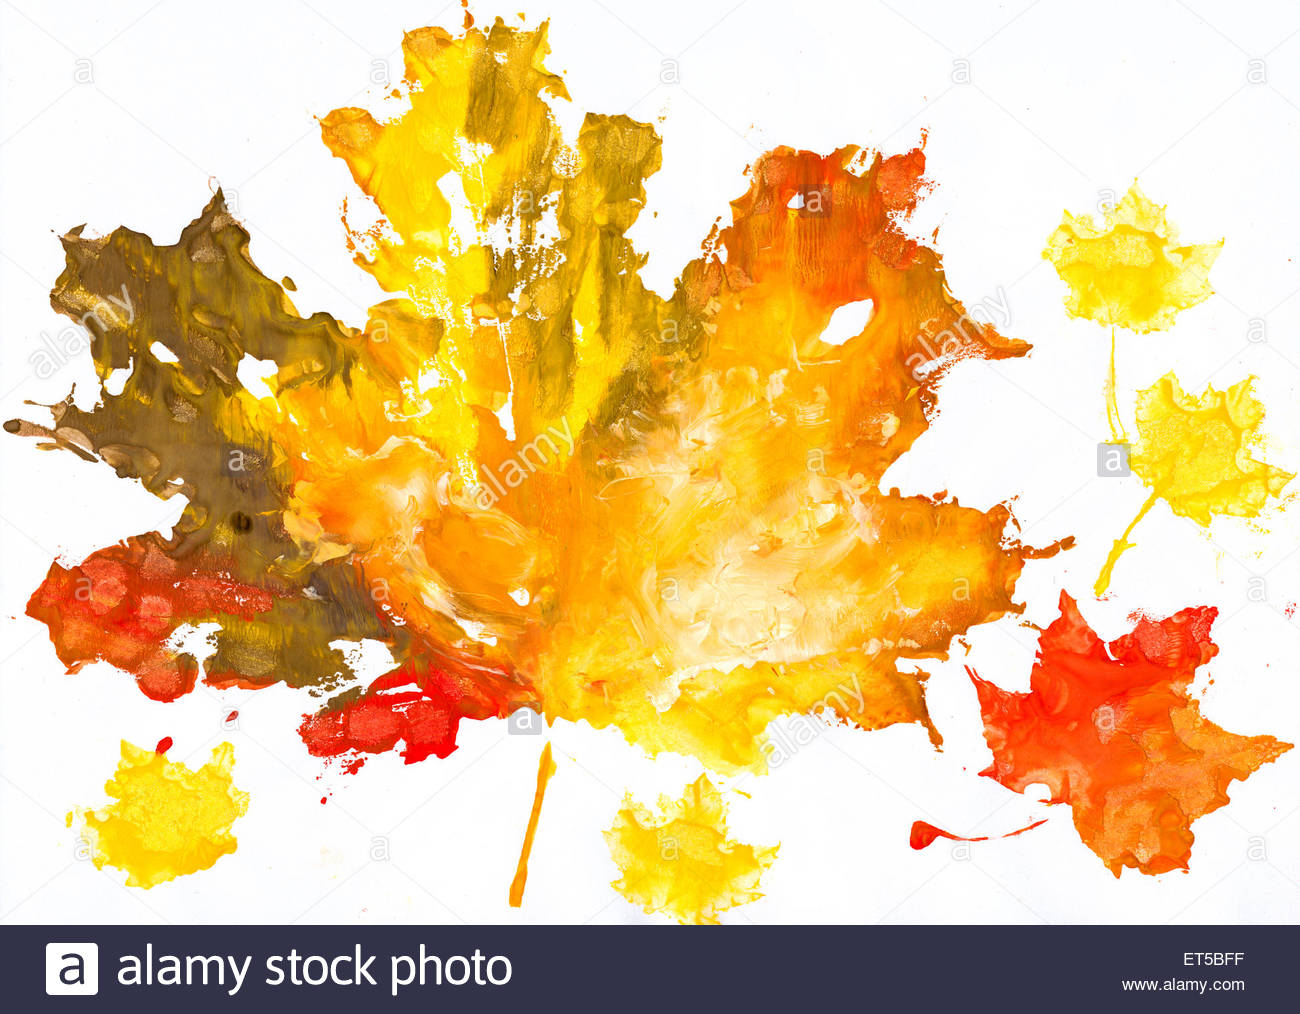 1300x1014 Autumn Leaves Watercolor Print On Paper. Child Drawing Stock Photo